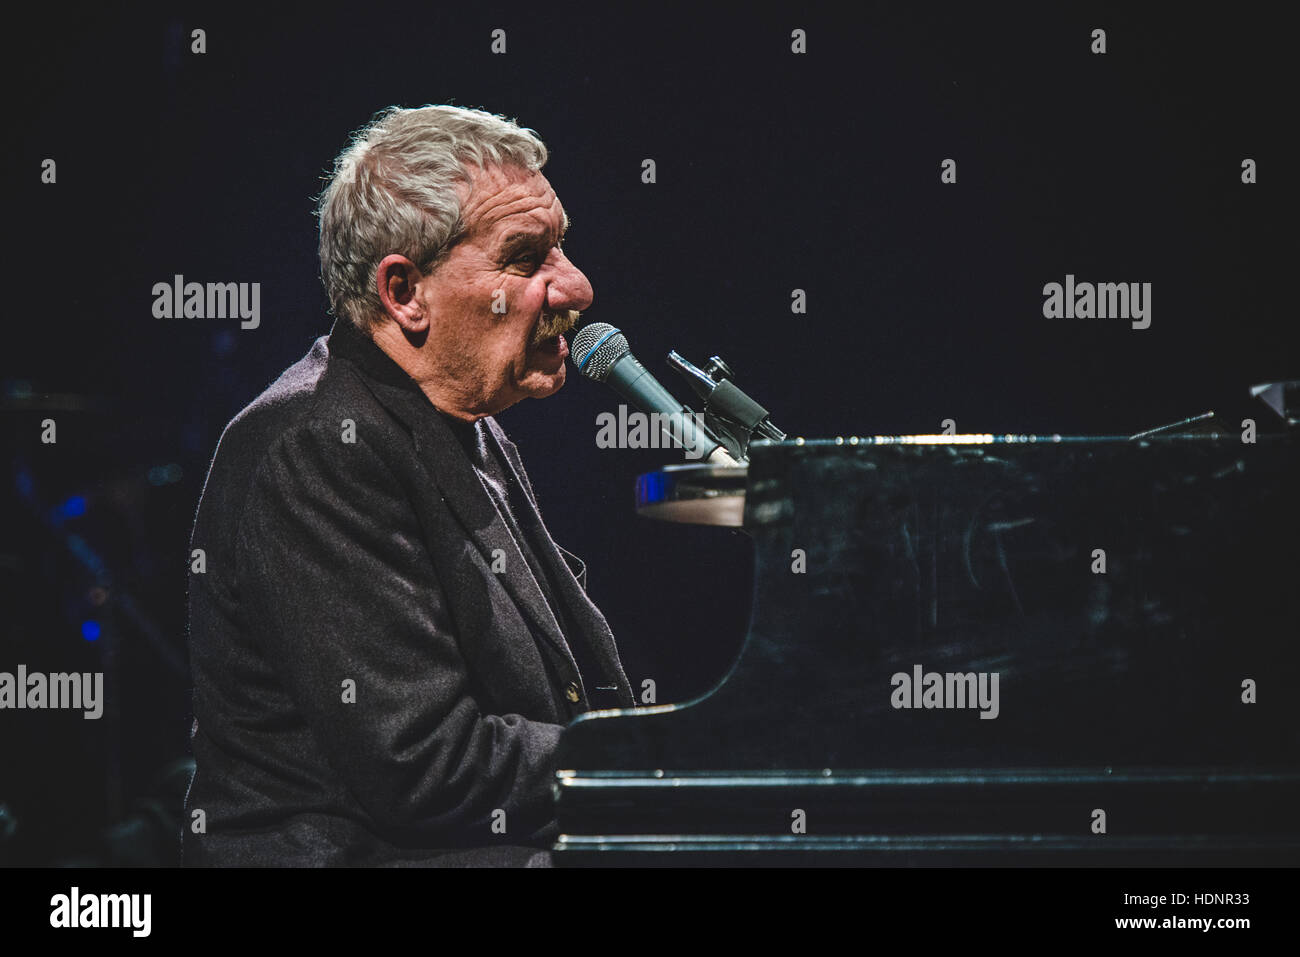 Turin, Italy. 12th Dec, 2016. Paolo Conte performing live at Teatro Regio for a charity concert in memory of Alberto Stock Photo